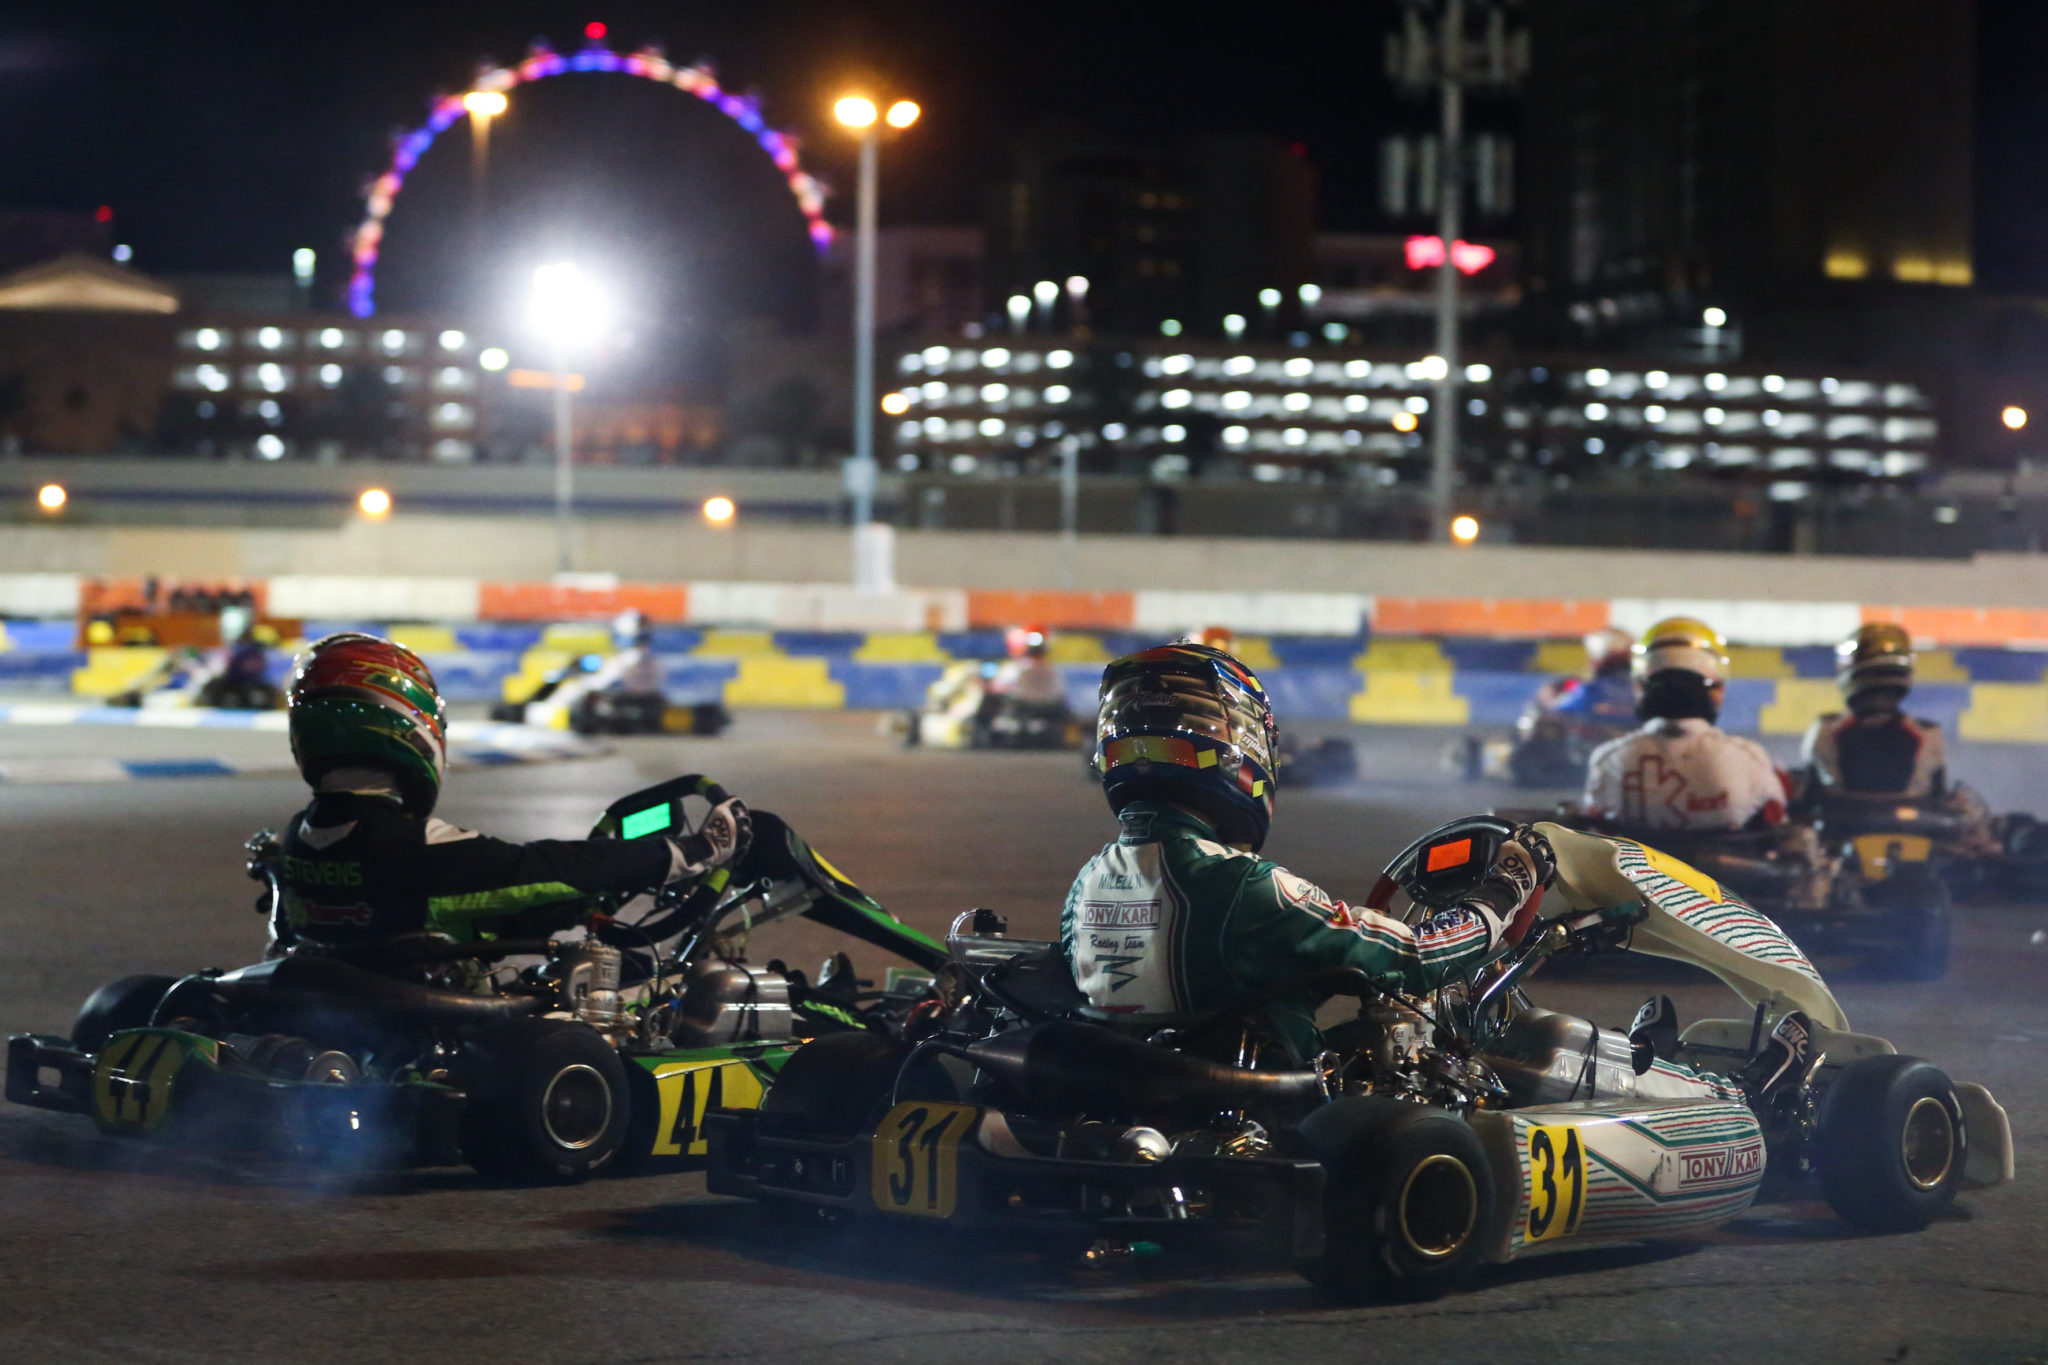 SKUSA SuperNationals XXII: Qualifying Heats 1 & 2 Recap